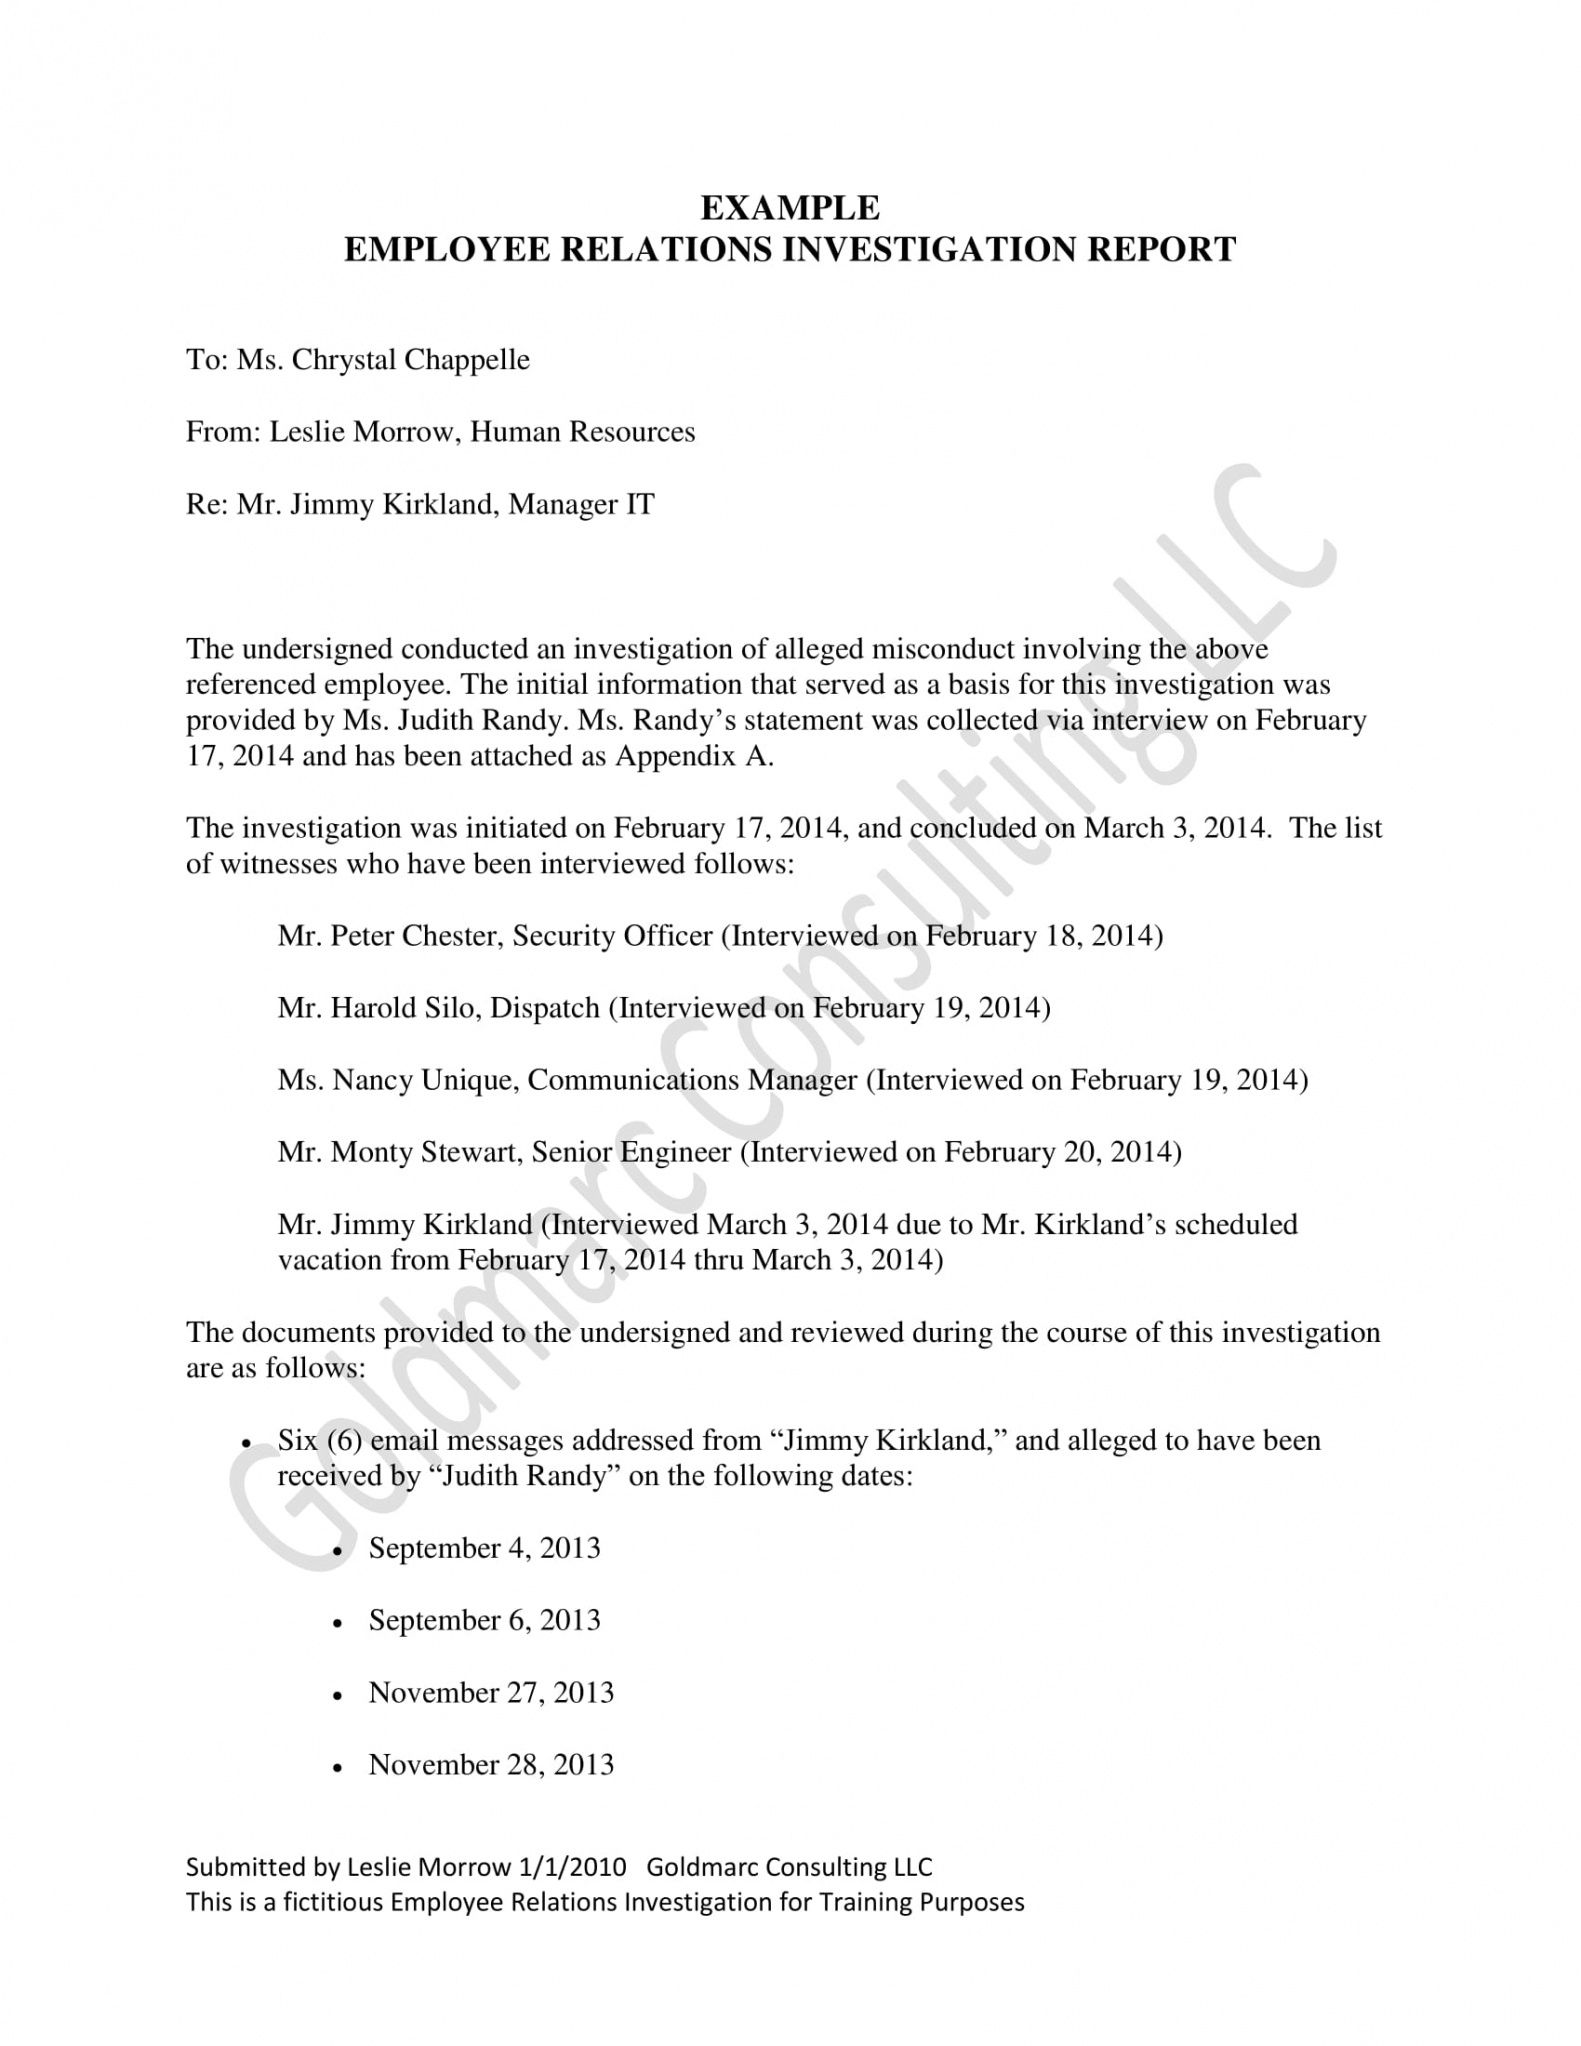 editable 10 workplace investigation report examples  pdf  examples workplace harassment investigation report template doc